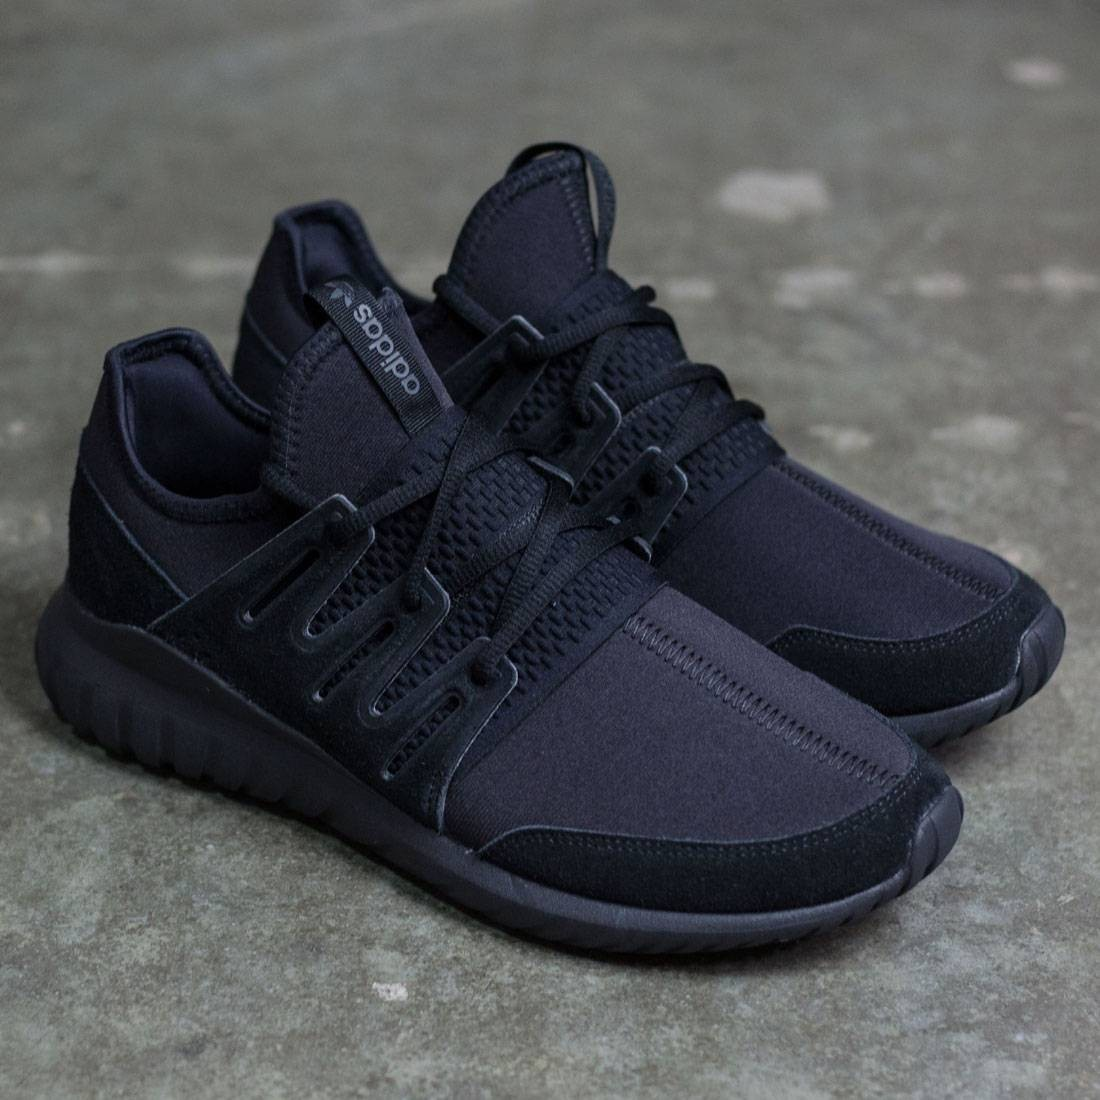 Cheap Adidas Tubular Mens Shoes Sale, Buy Tubular Boost for